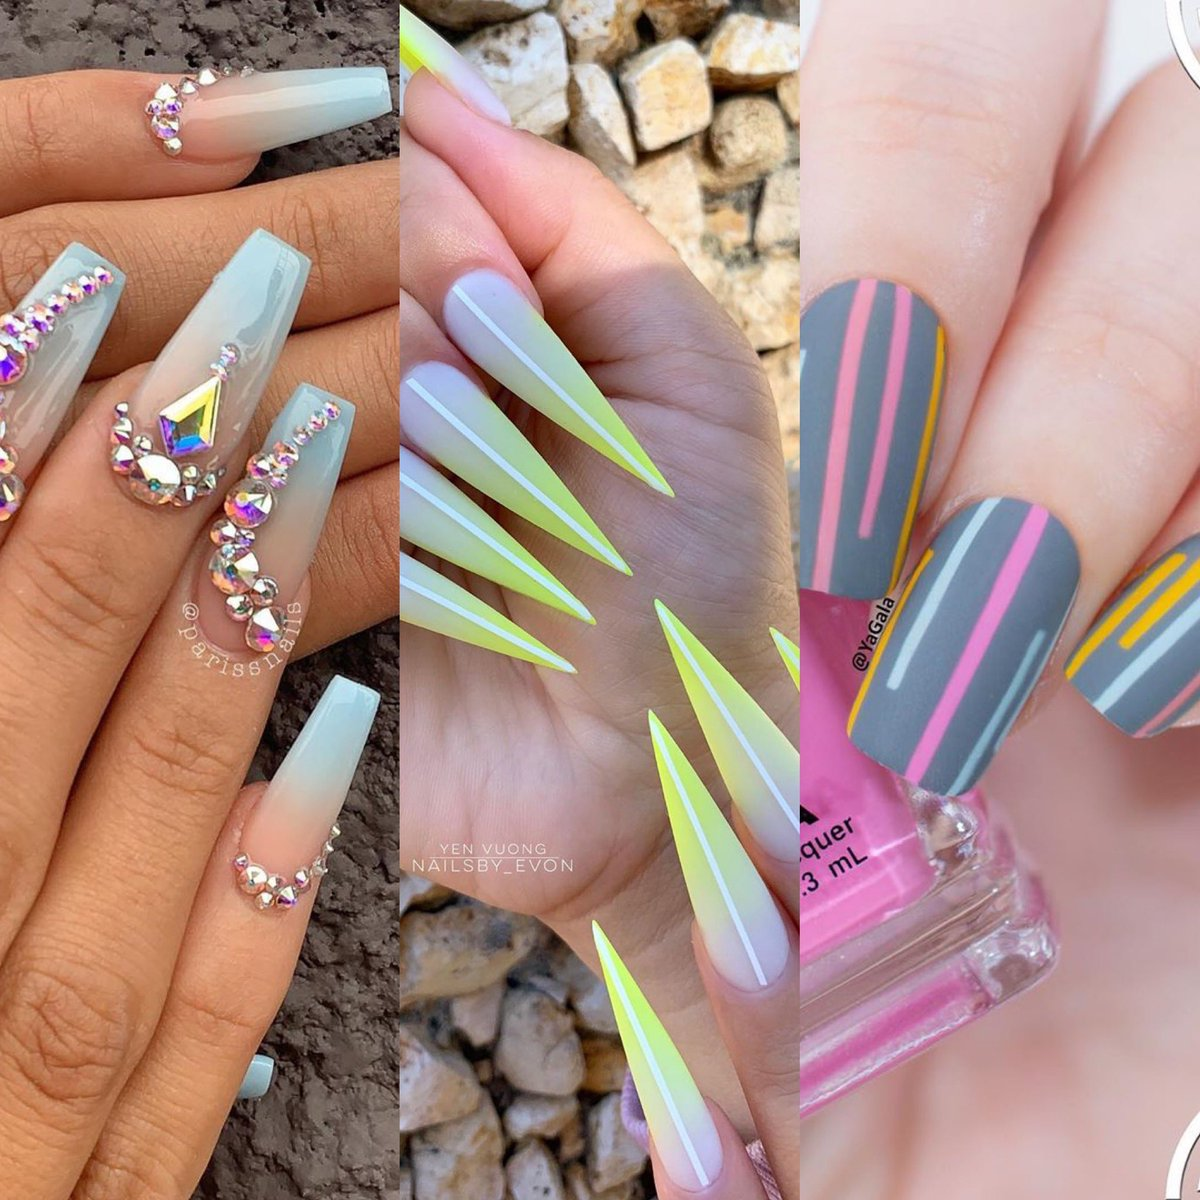 Subscribe to our Youtube channel for stunning looks, nails & beauty advice! http://youtube.com/c/OrigeneOrigene…  Follow us on Instagram @origeneglamakeup Photo credits @nailsby_evon @pariss_nails  #pressplay #beauty #nails #nail #nailsofinstagram #naildesign #naildesigns #fashion #style